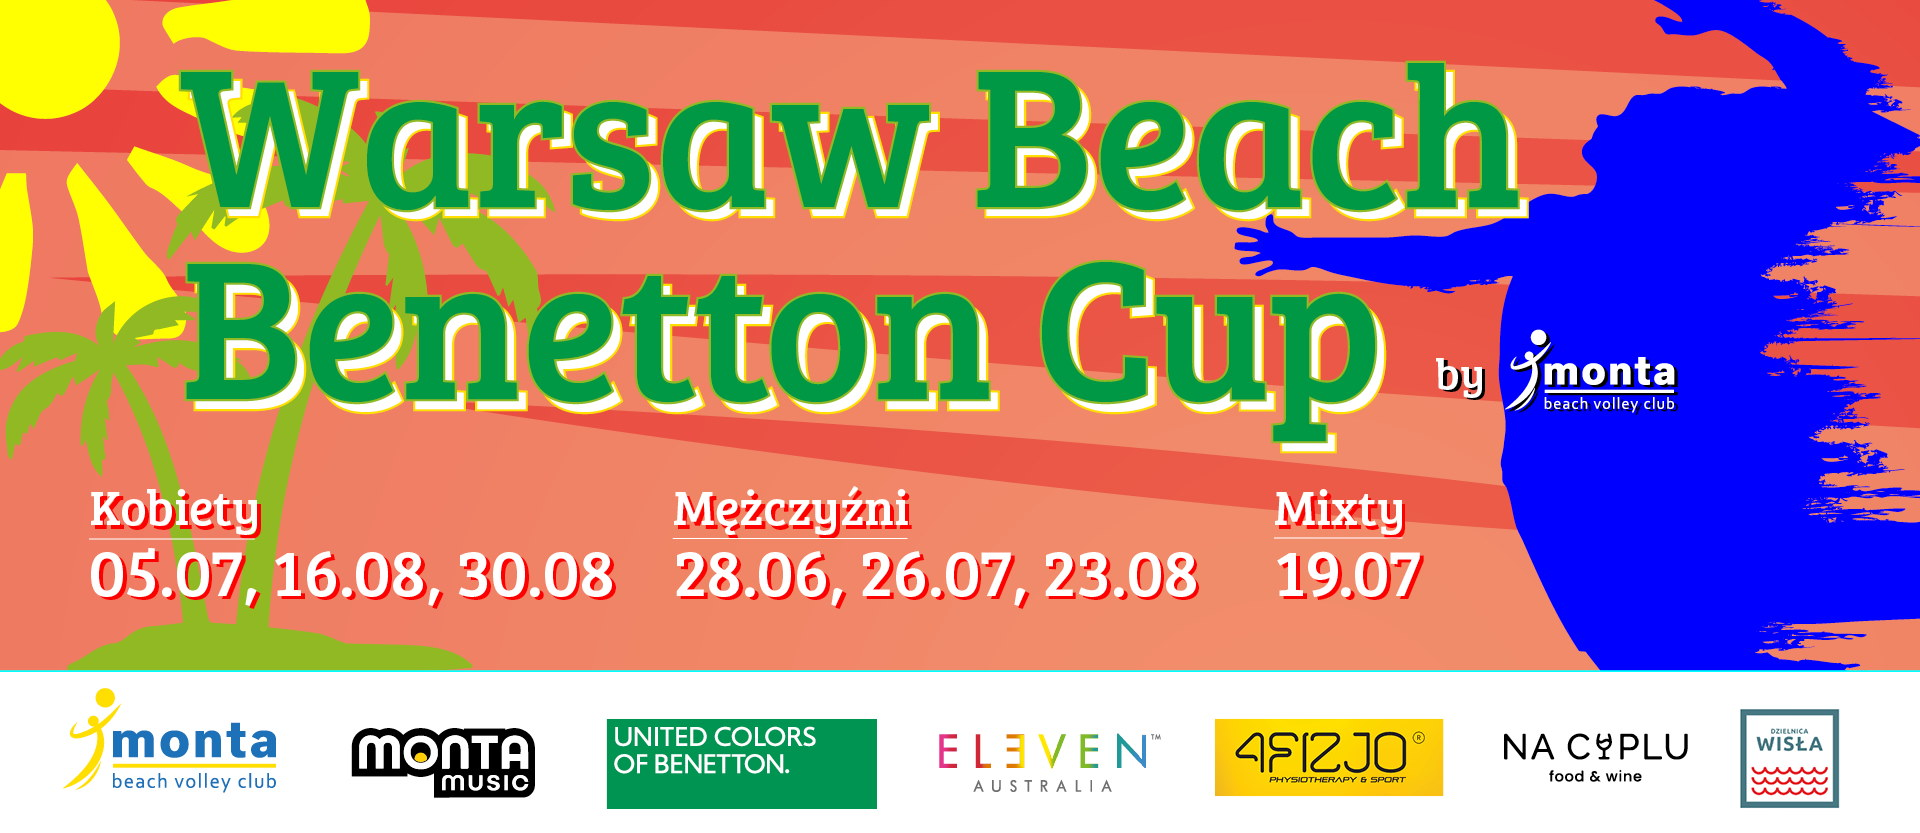 Warsaw_Beach_Benetton_Cup_Monta_Club